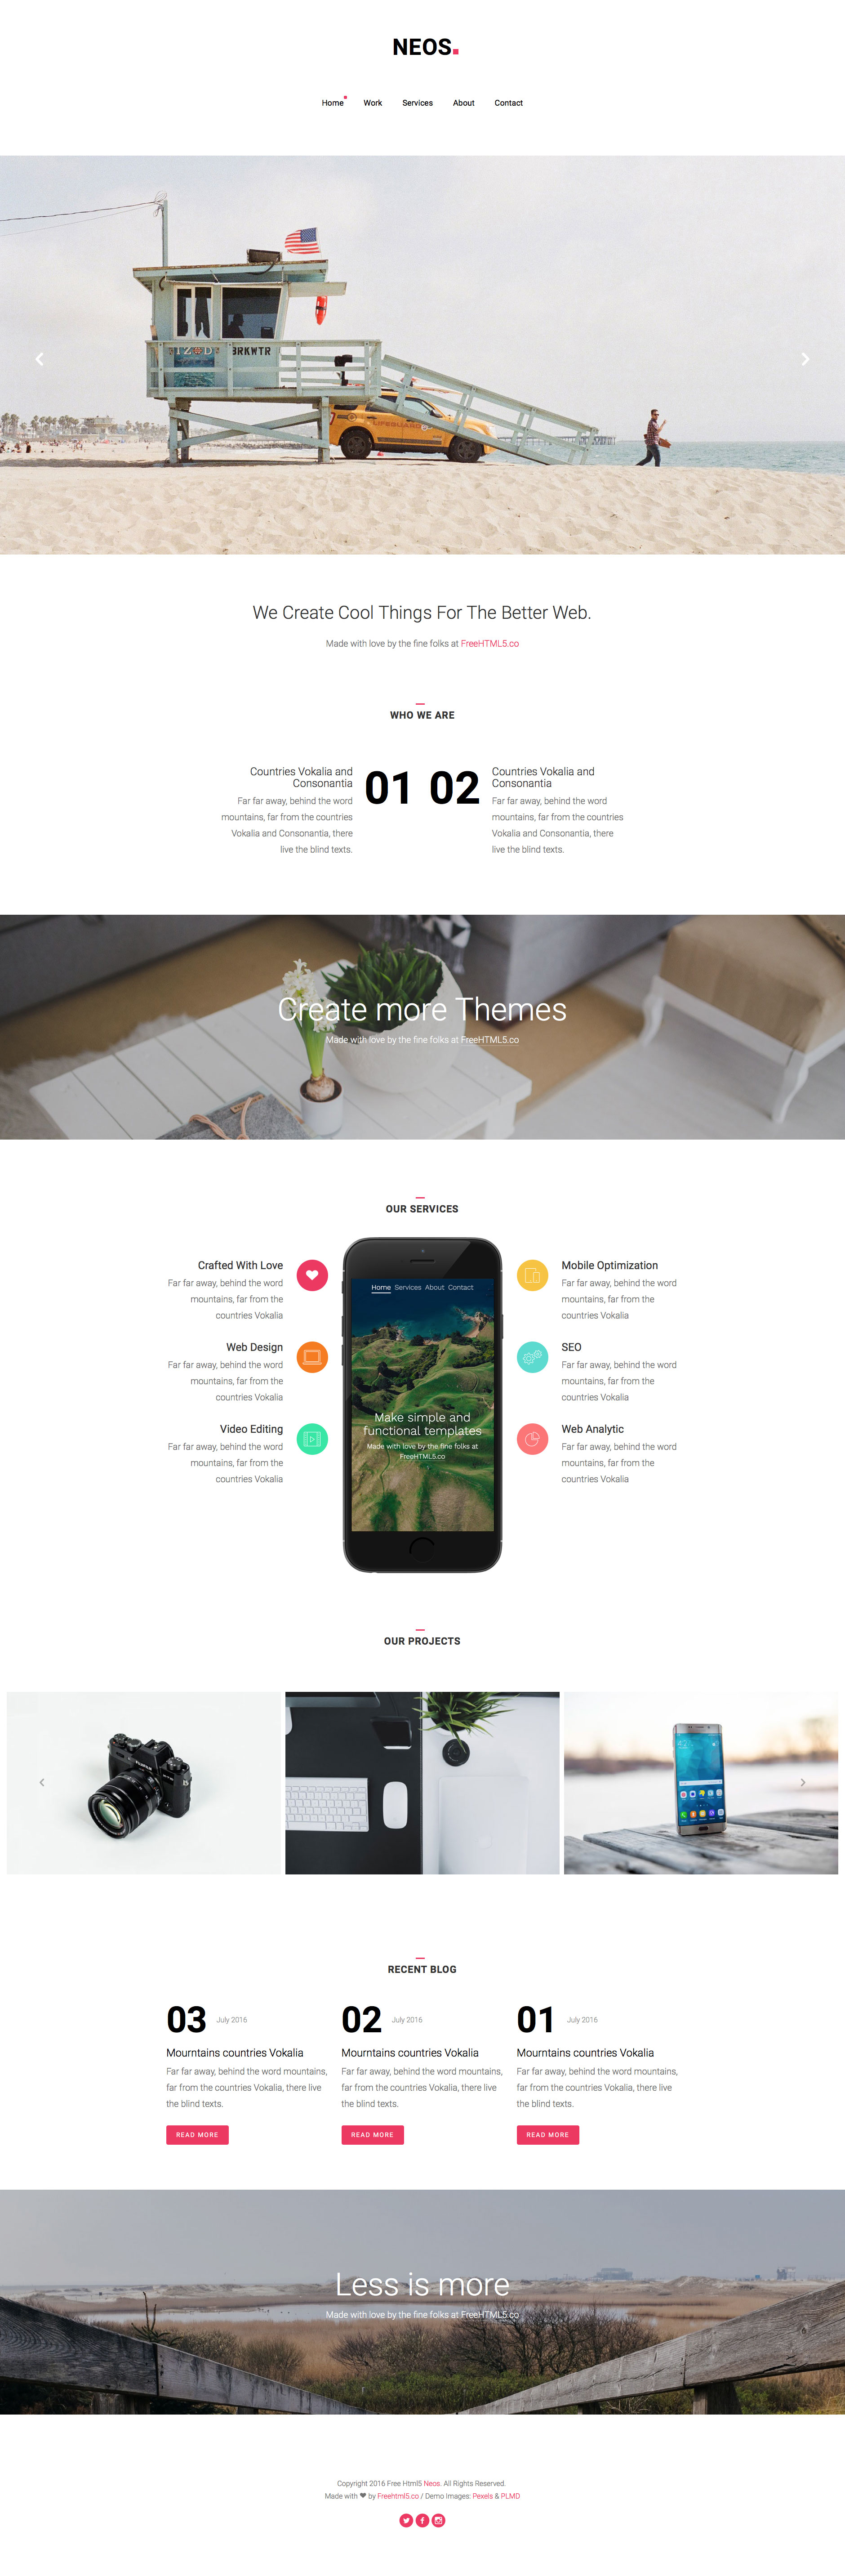 Neos is a free responsive HTML5 business website template based on Bootstrap 3 front-end framework. The prefect choice for any type of business websites. The layout of this template is fully responsive and looks great on desktop and mobile devices.